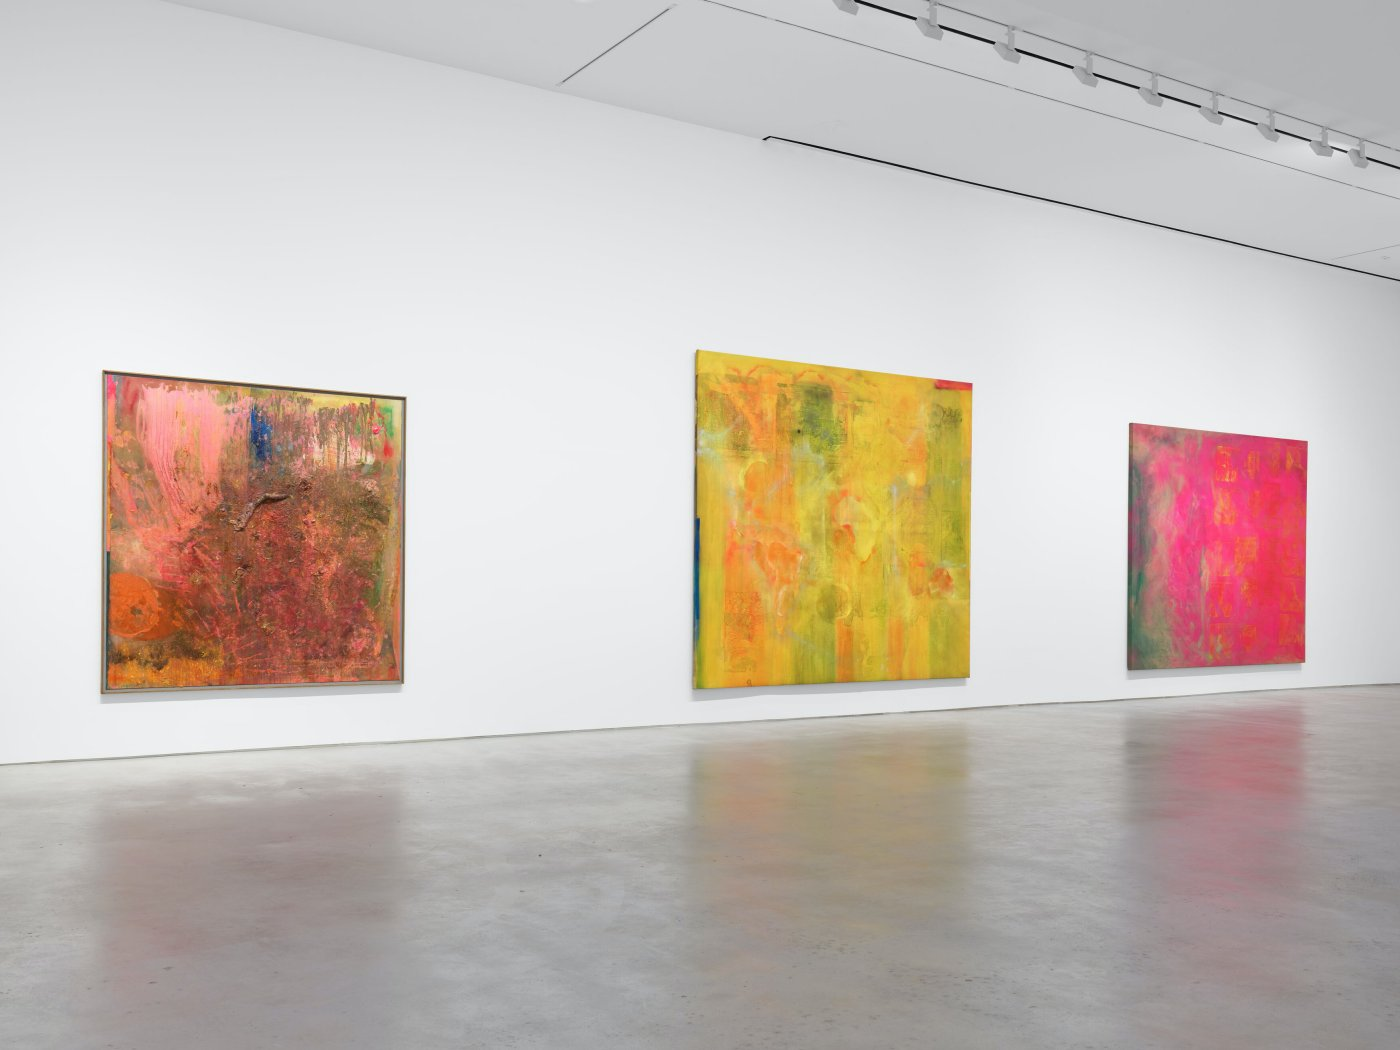 Hauser Wirth West 22nd St Frank Bowling 3